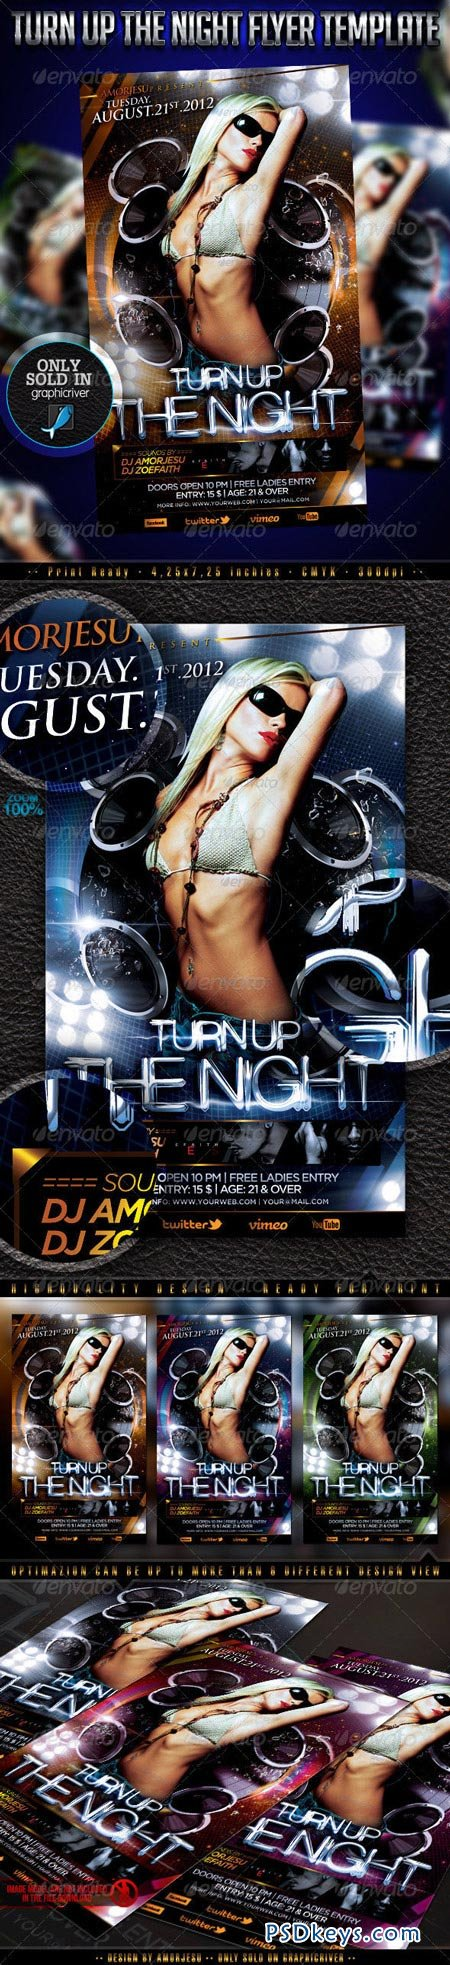 Turn Up The Night Flyer Template 3199888